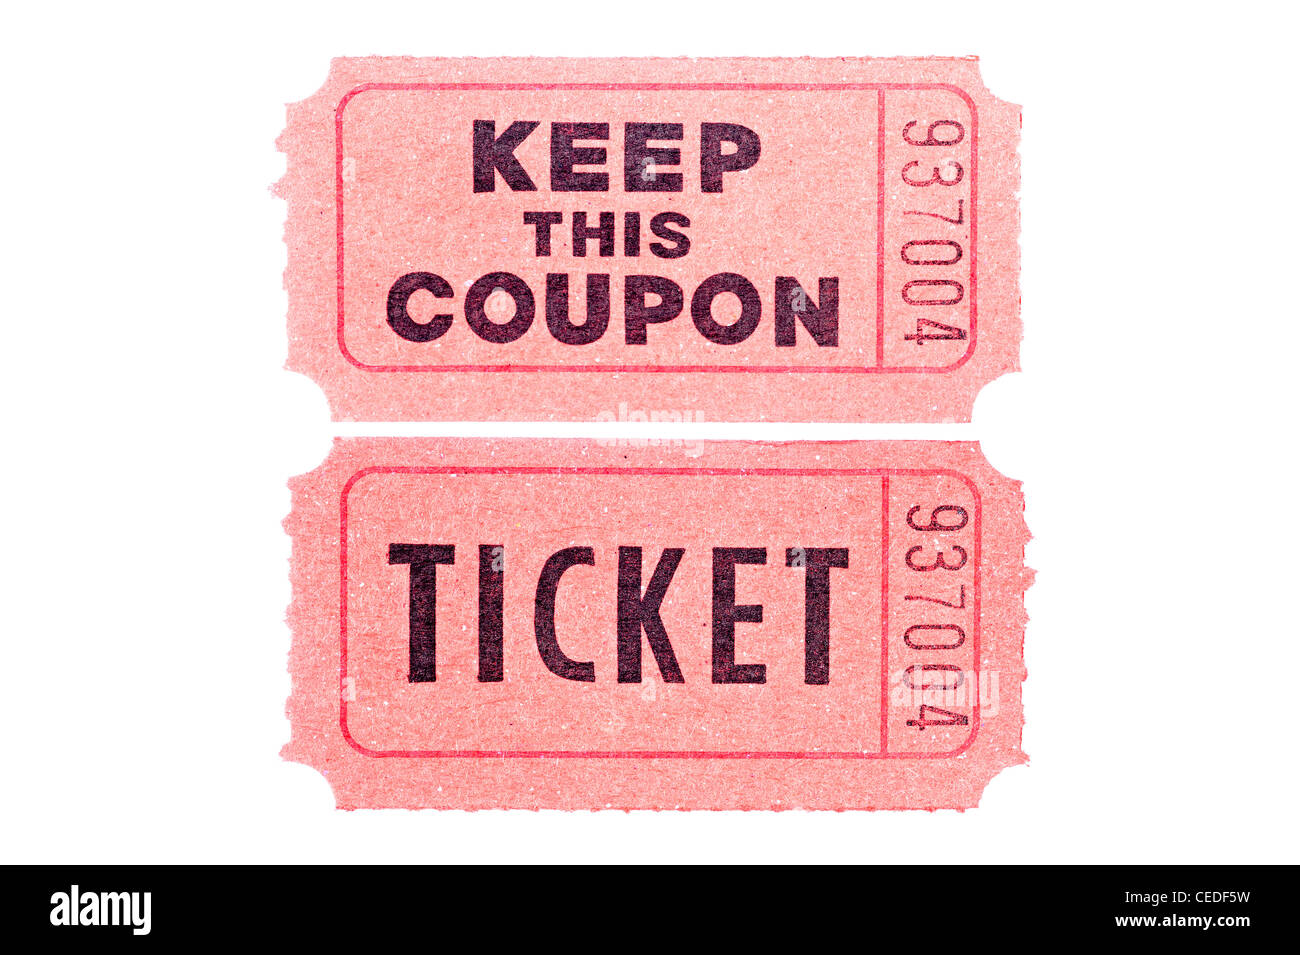 Two tickets isolated on a white background - Stock Image